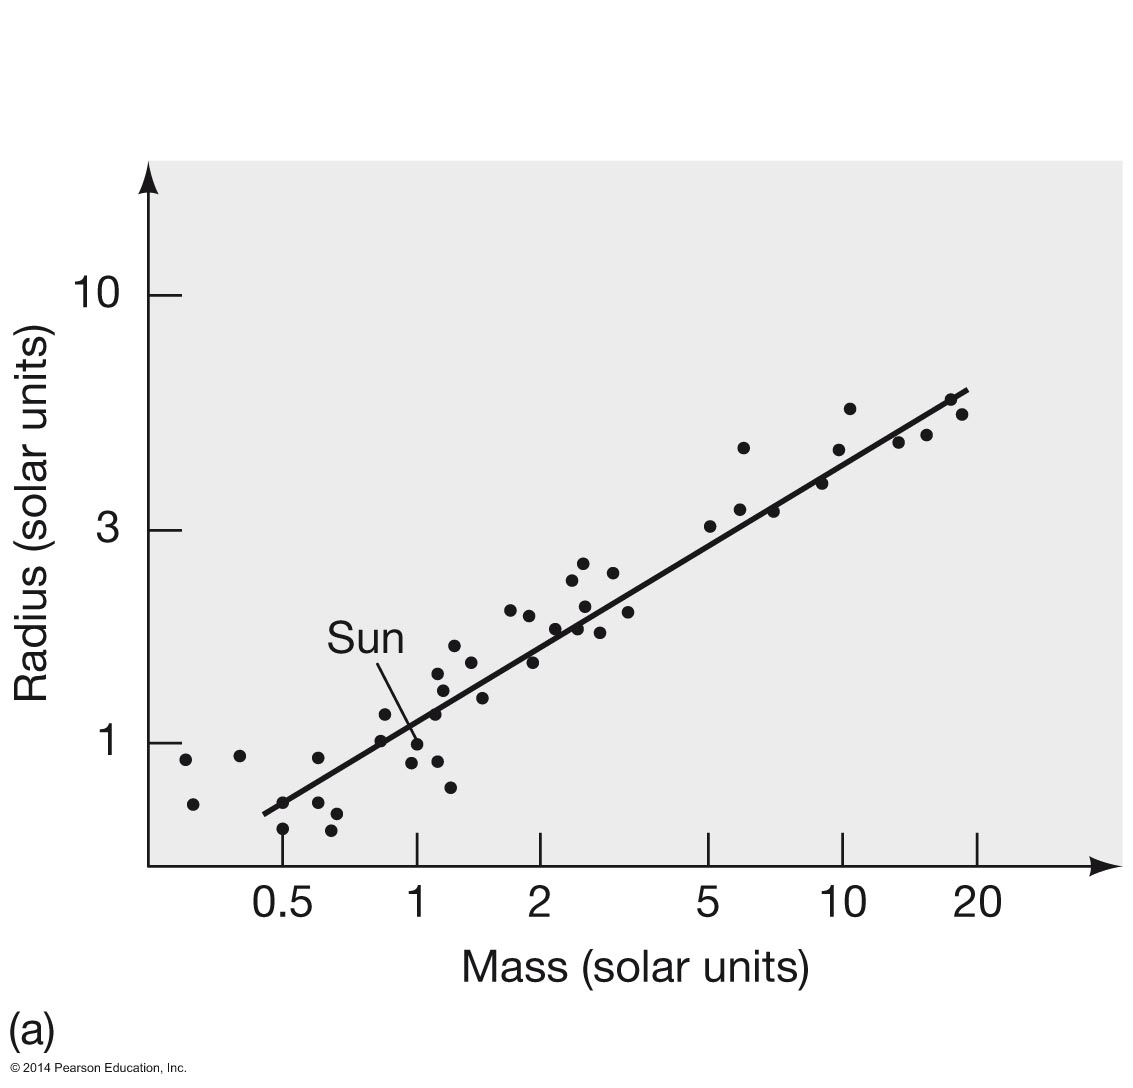 Astronomy 122 measuring the stars mass radius relation for main sequence stars pooptronica Choice Image